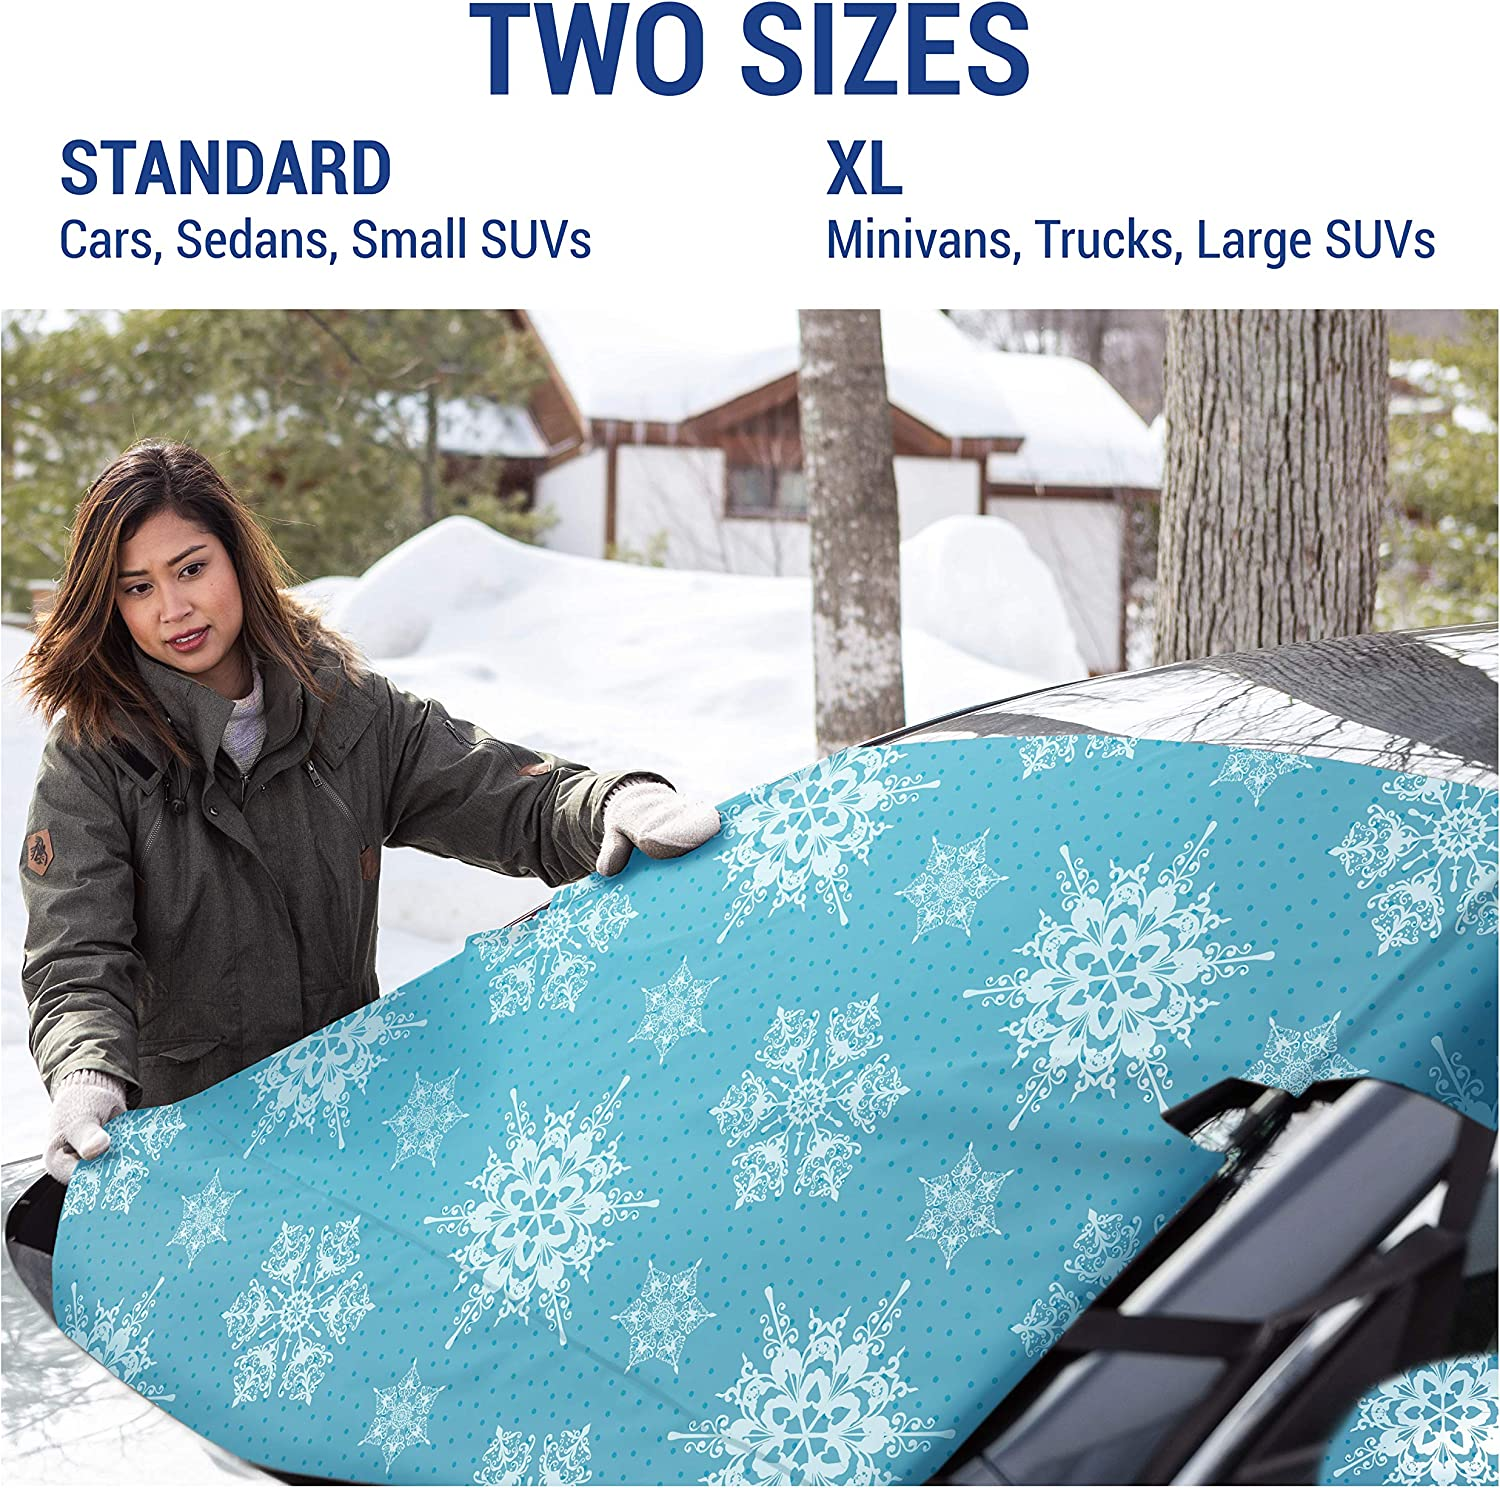 X-Large, Baltic Slate Frostguard Ice and Frost Protects from Snow Premium Winter Windshield Snow Cover with Security Panel and Wiper Cover